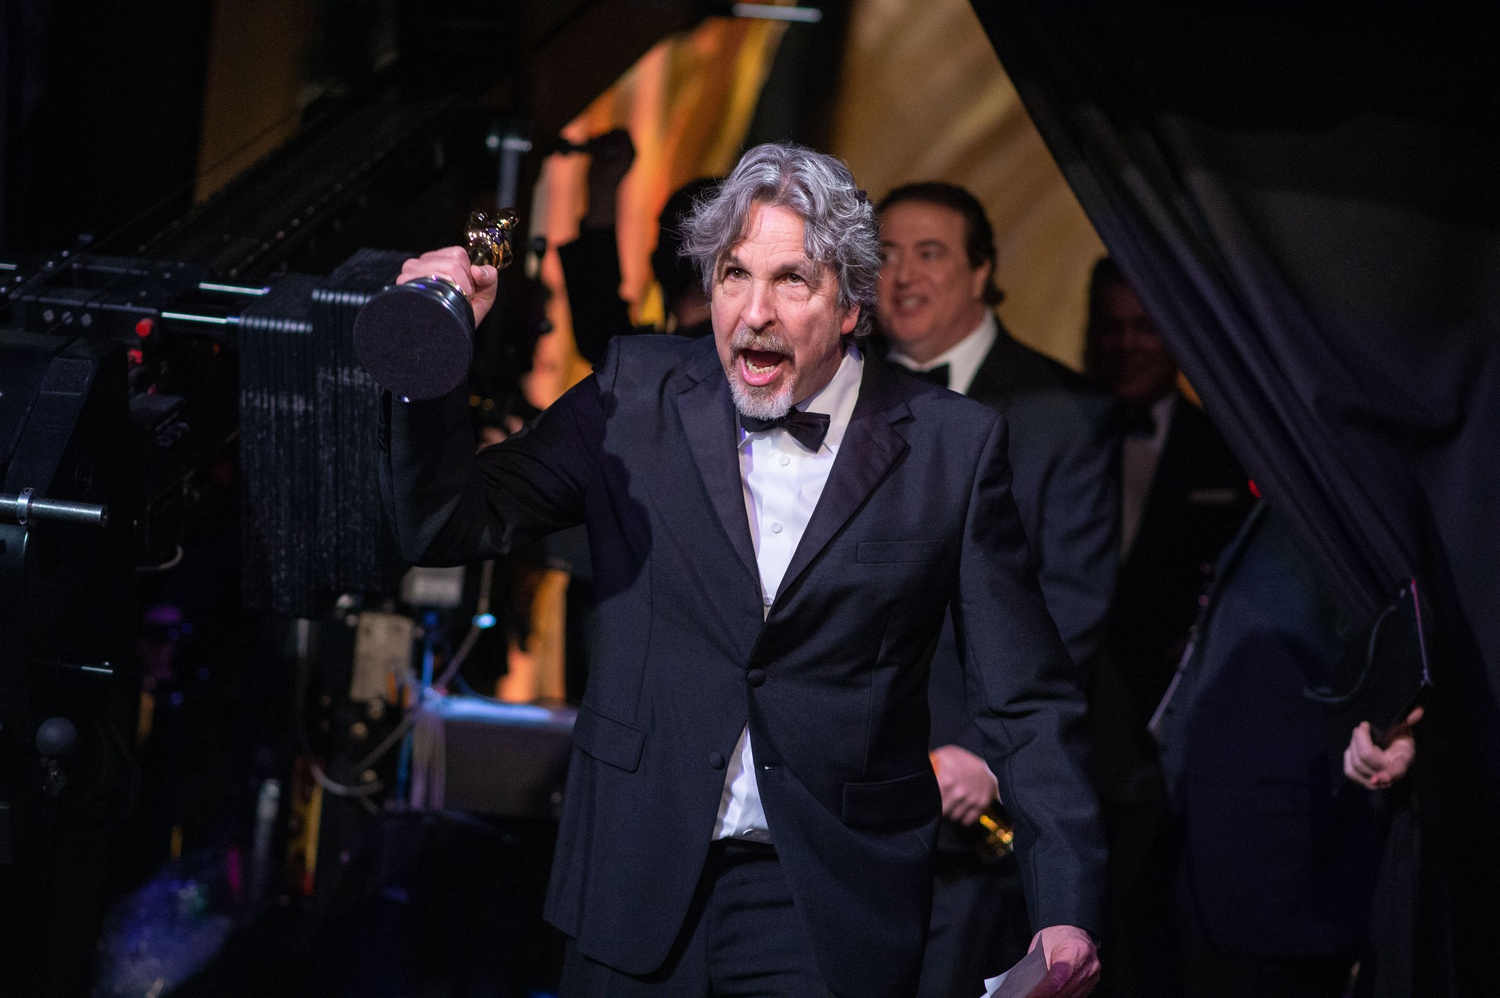 Peter Farrelly accepts the Oscar® for original screenplay at the 91st Oscars.